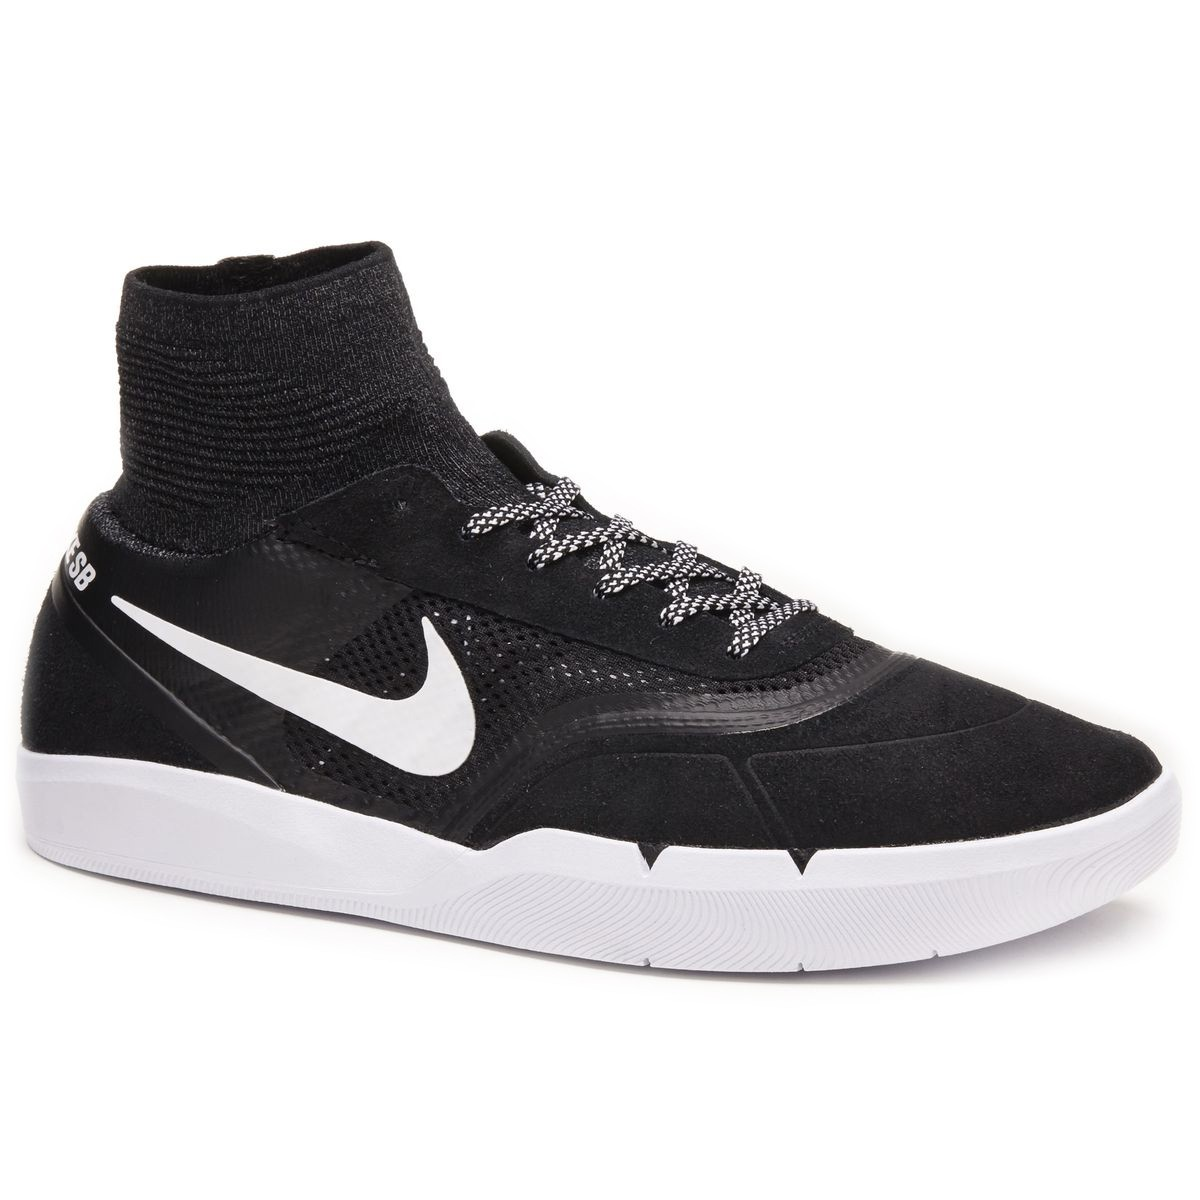 b420b67f5402b Nike SB Hyperfeel Koston 3 Shoes - Black White - 8.0